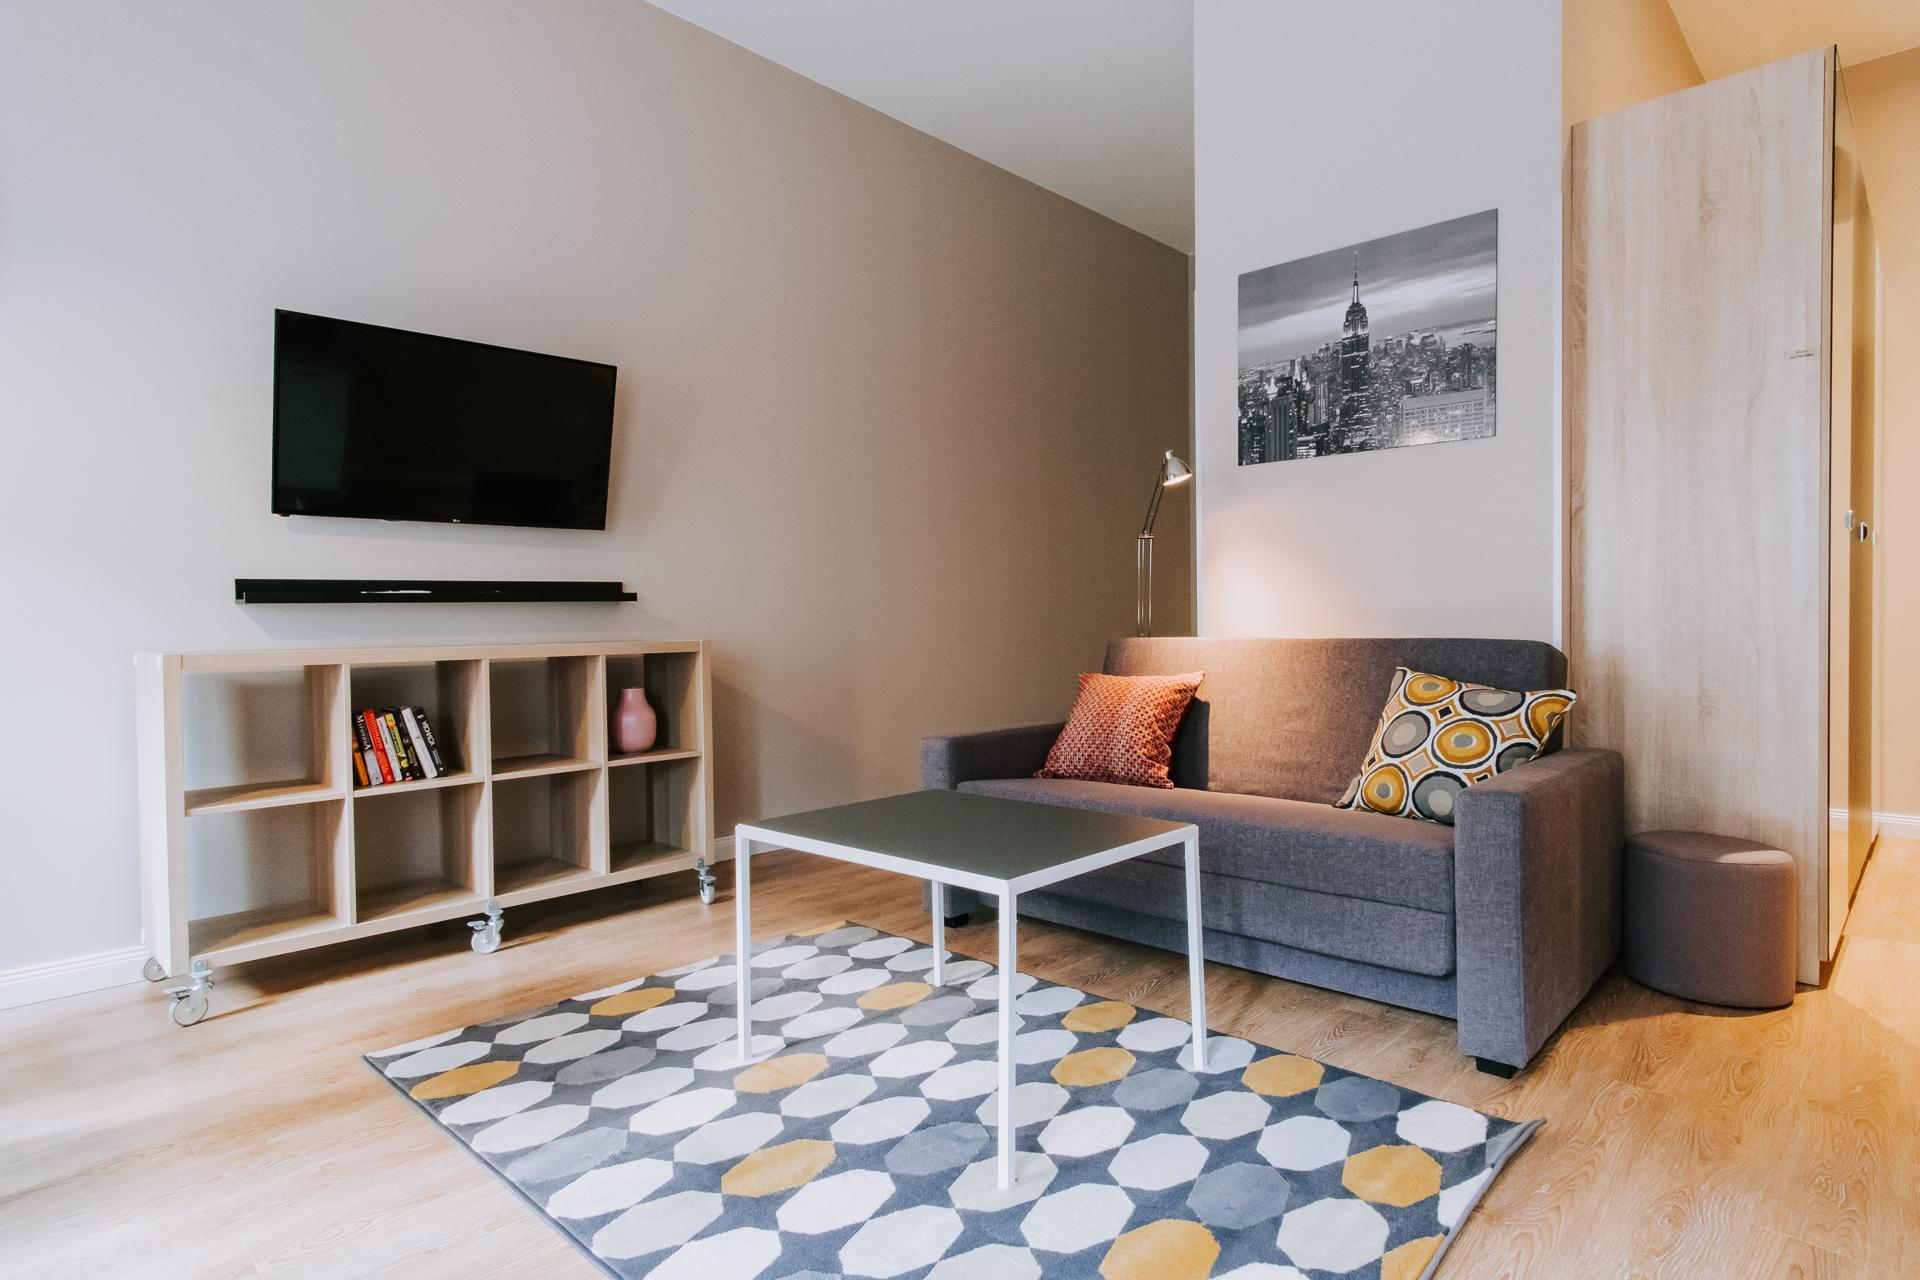 Apartament de luxe de 3 habitacions (Deluxe 3-Bedroom Apartment)